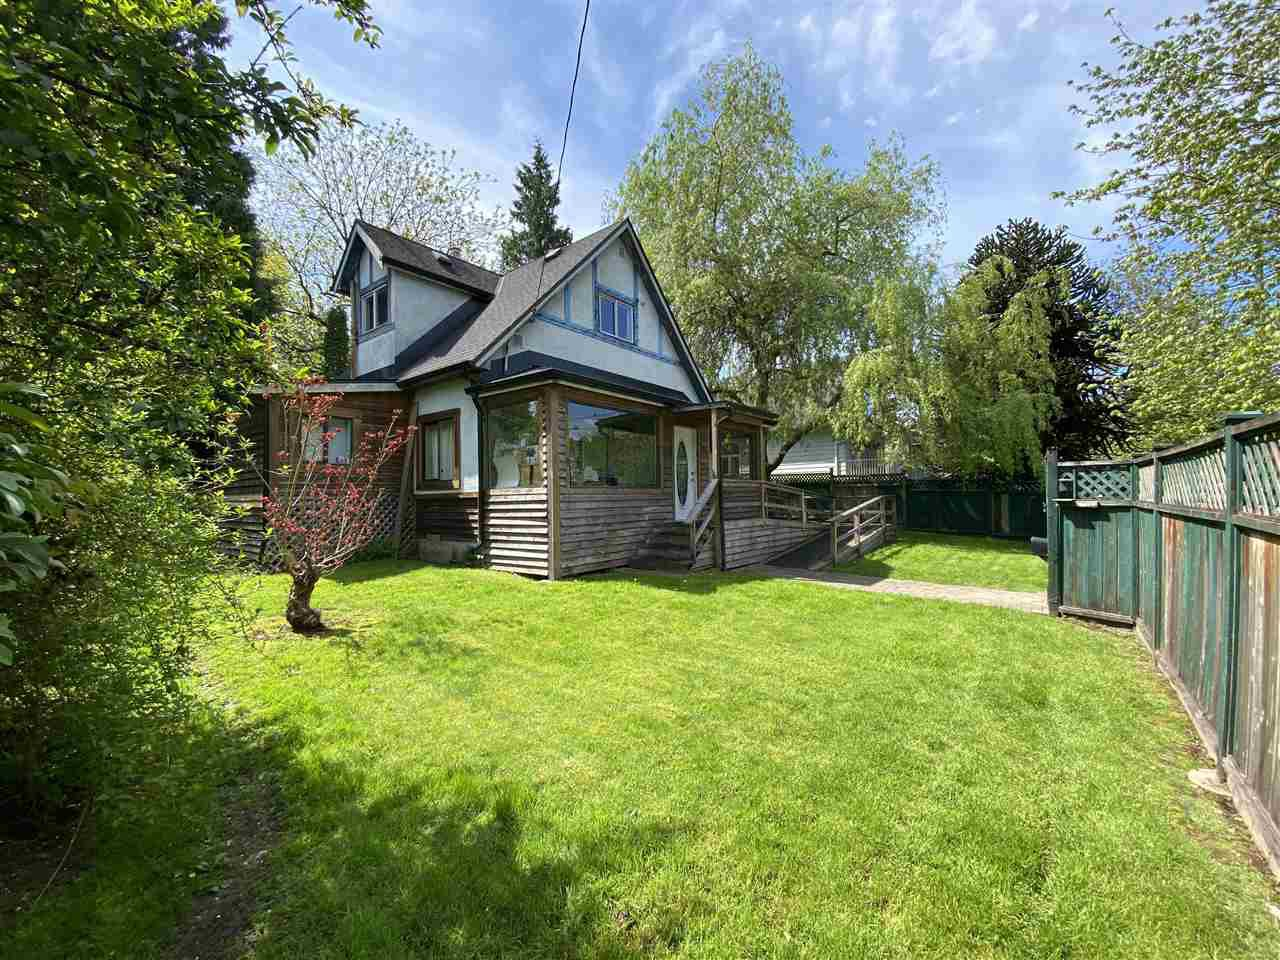 Main Photo: 2229 CLARKE Street in Port Moody: Port Moody Centre House for sale : MLS®# R2447275